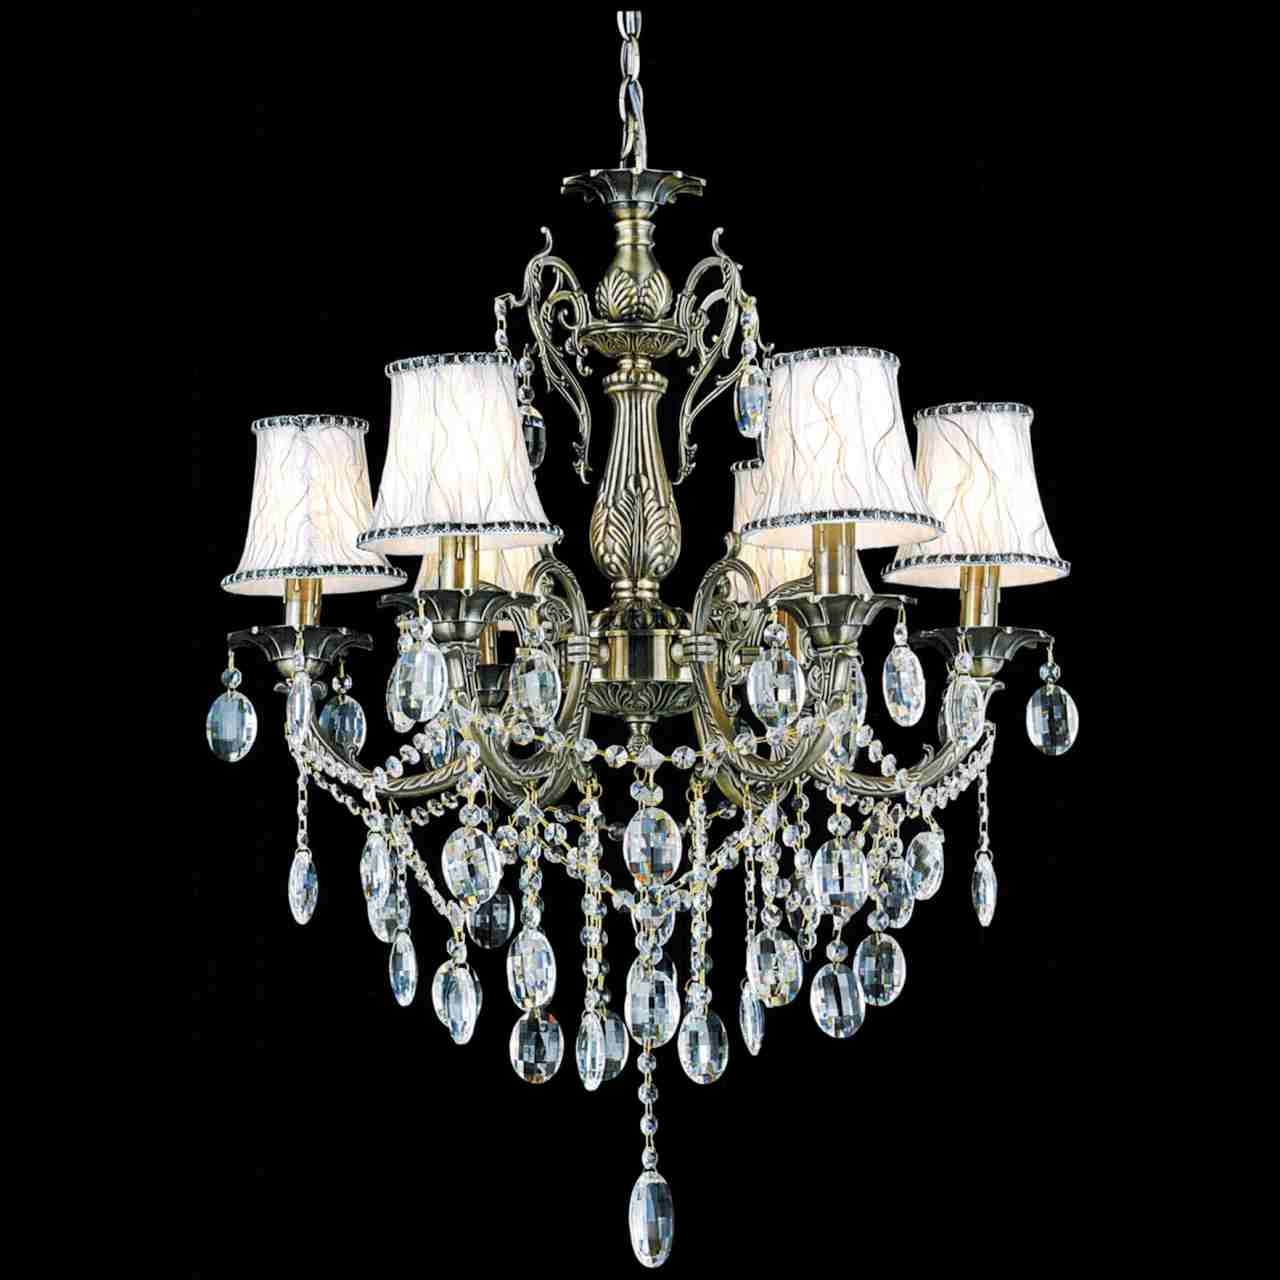 Brizzo Lighting Stores 24 Ottone Traditional Candle Round Regarding Chandelier Light Shades (View 17 of 25)